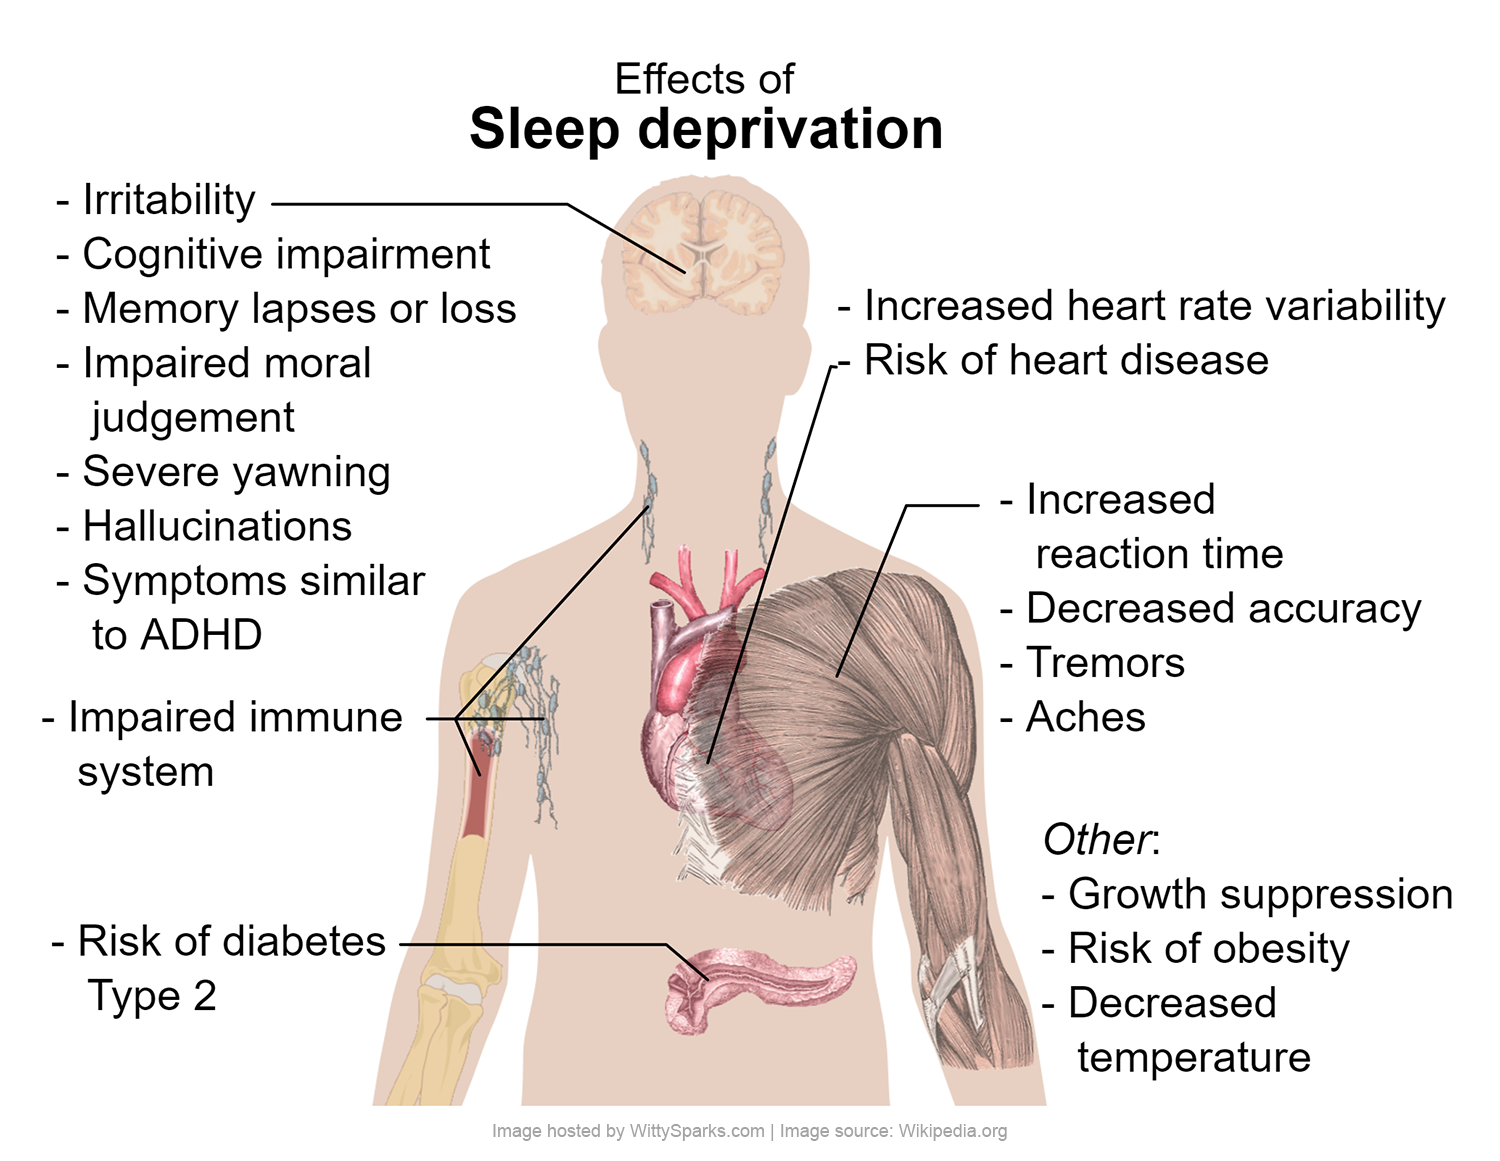 Side effects from missing sleep